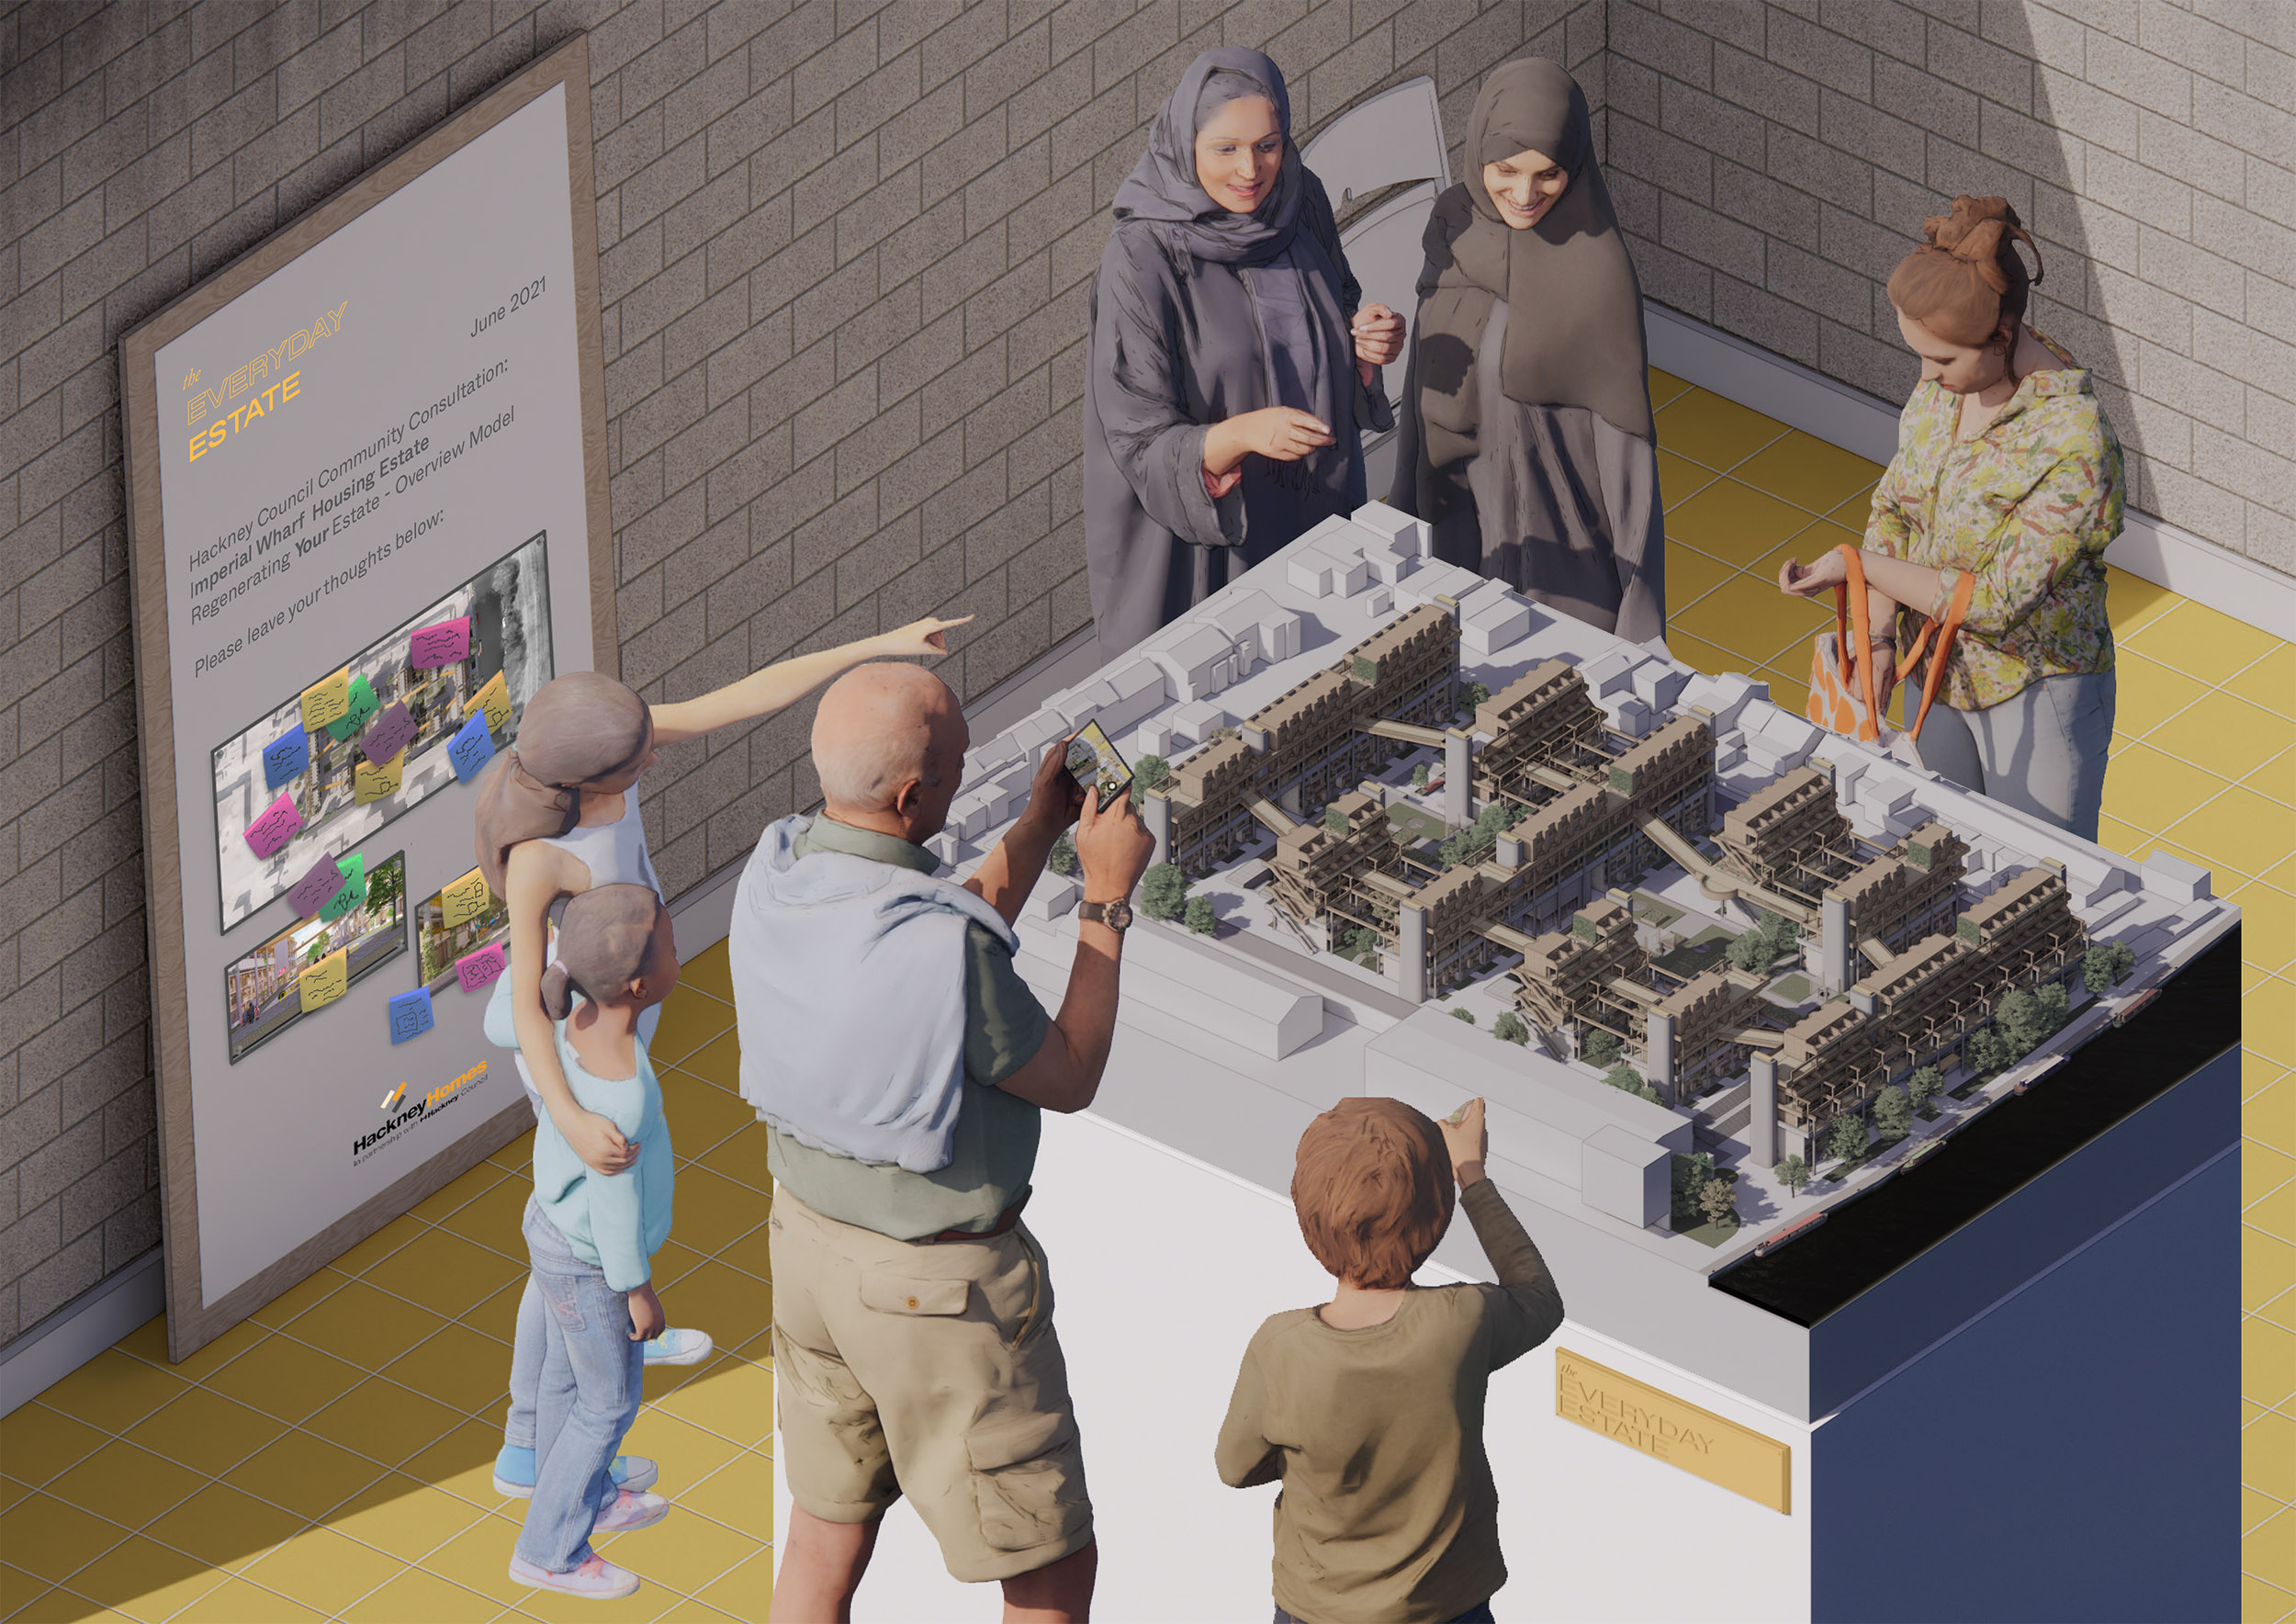 Imagined community consultation for Imperial Wharf residents.